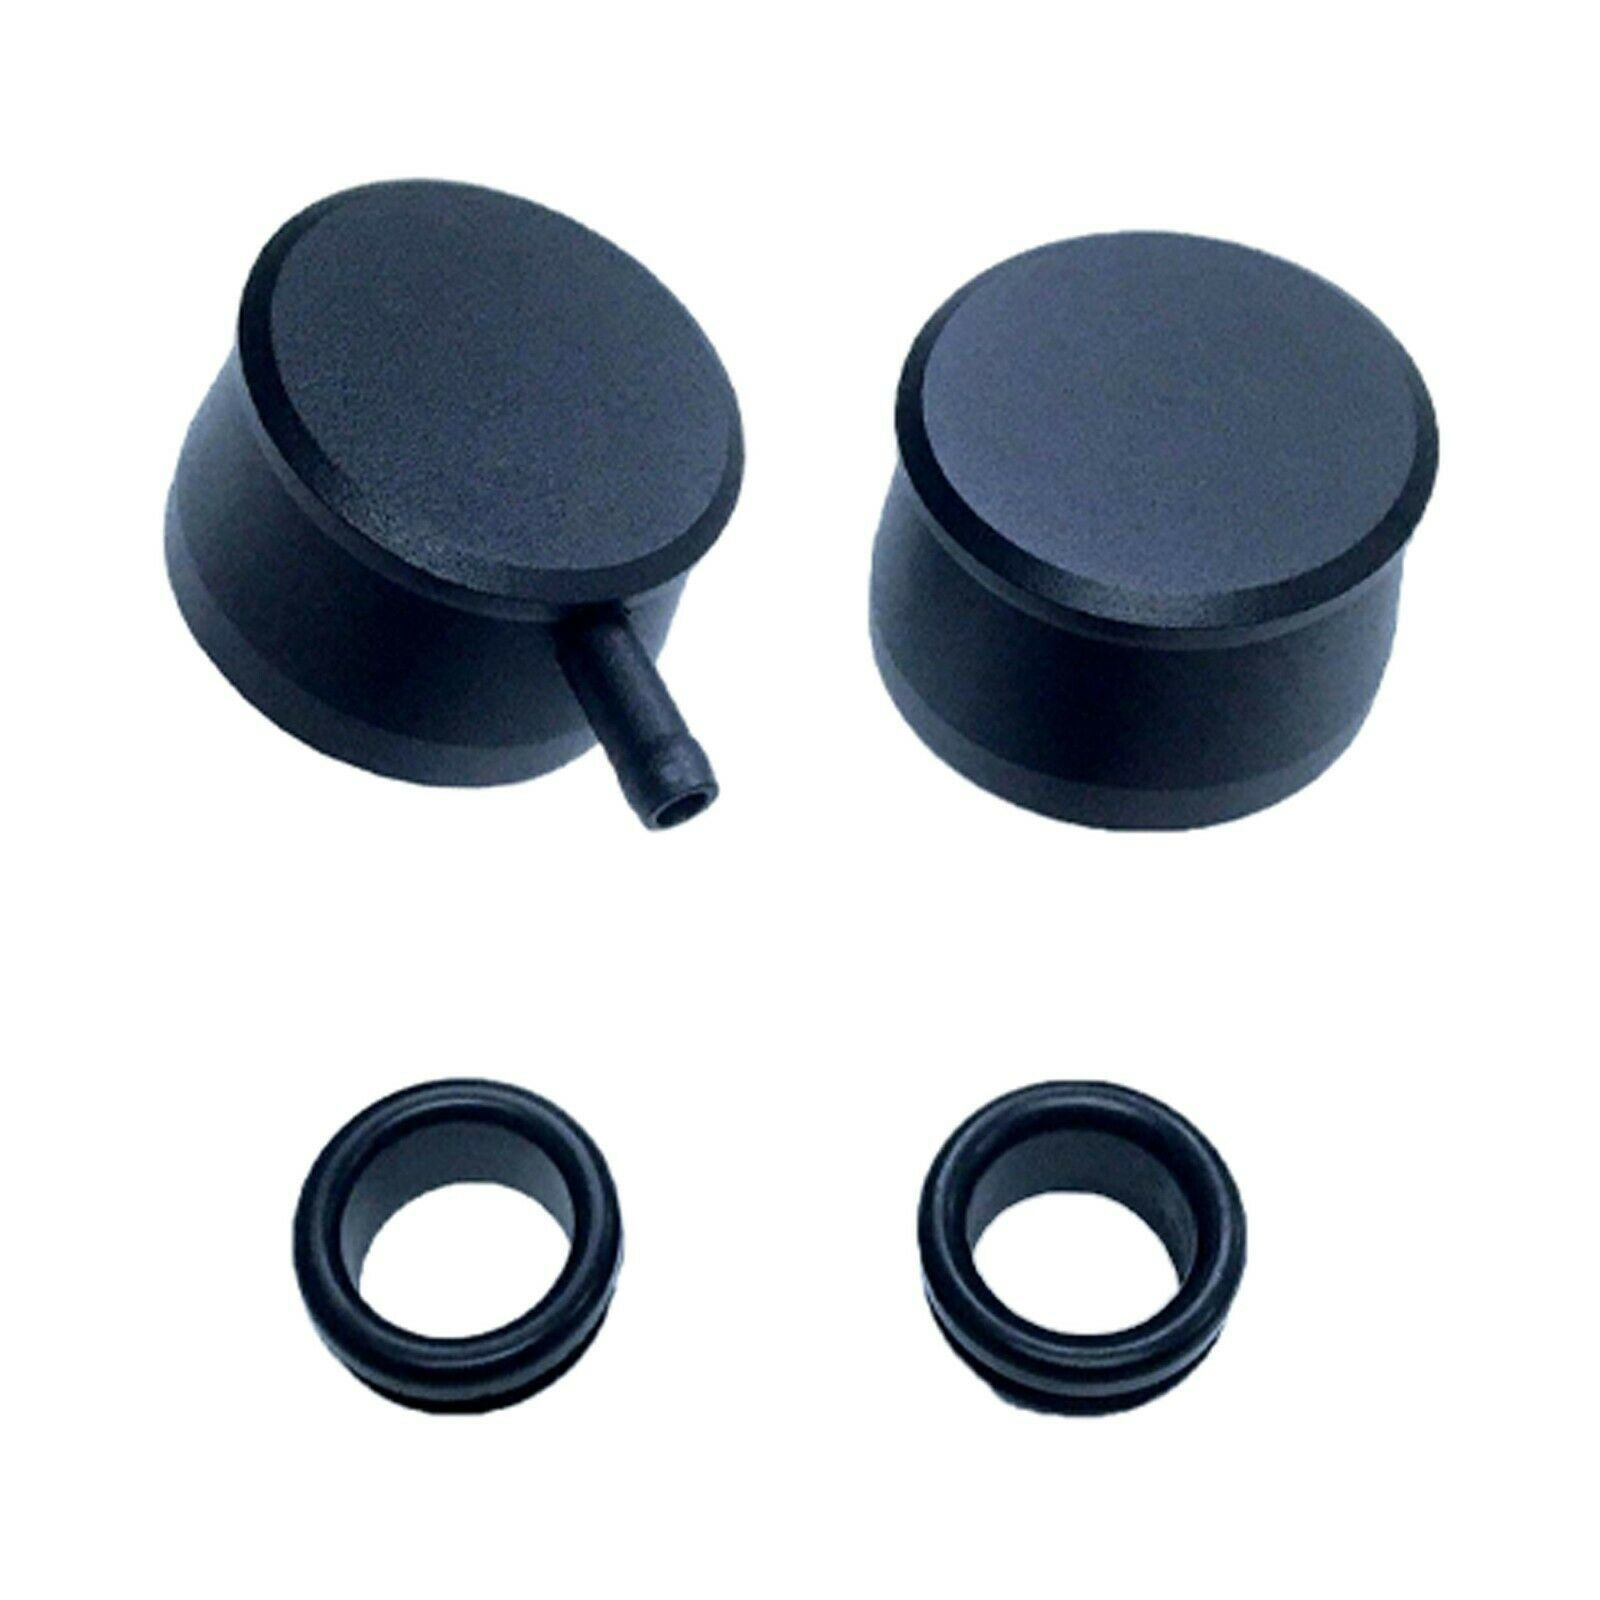 Black Aluminum Breather Set with Grommets Valve Covers